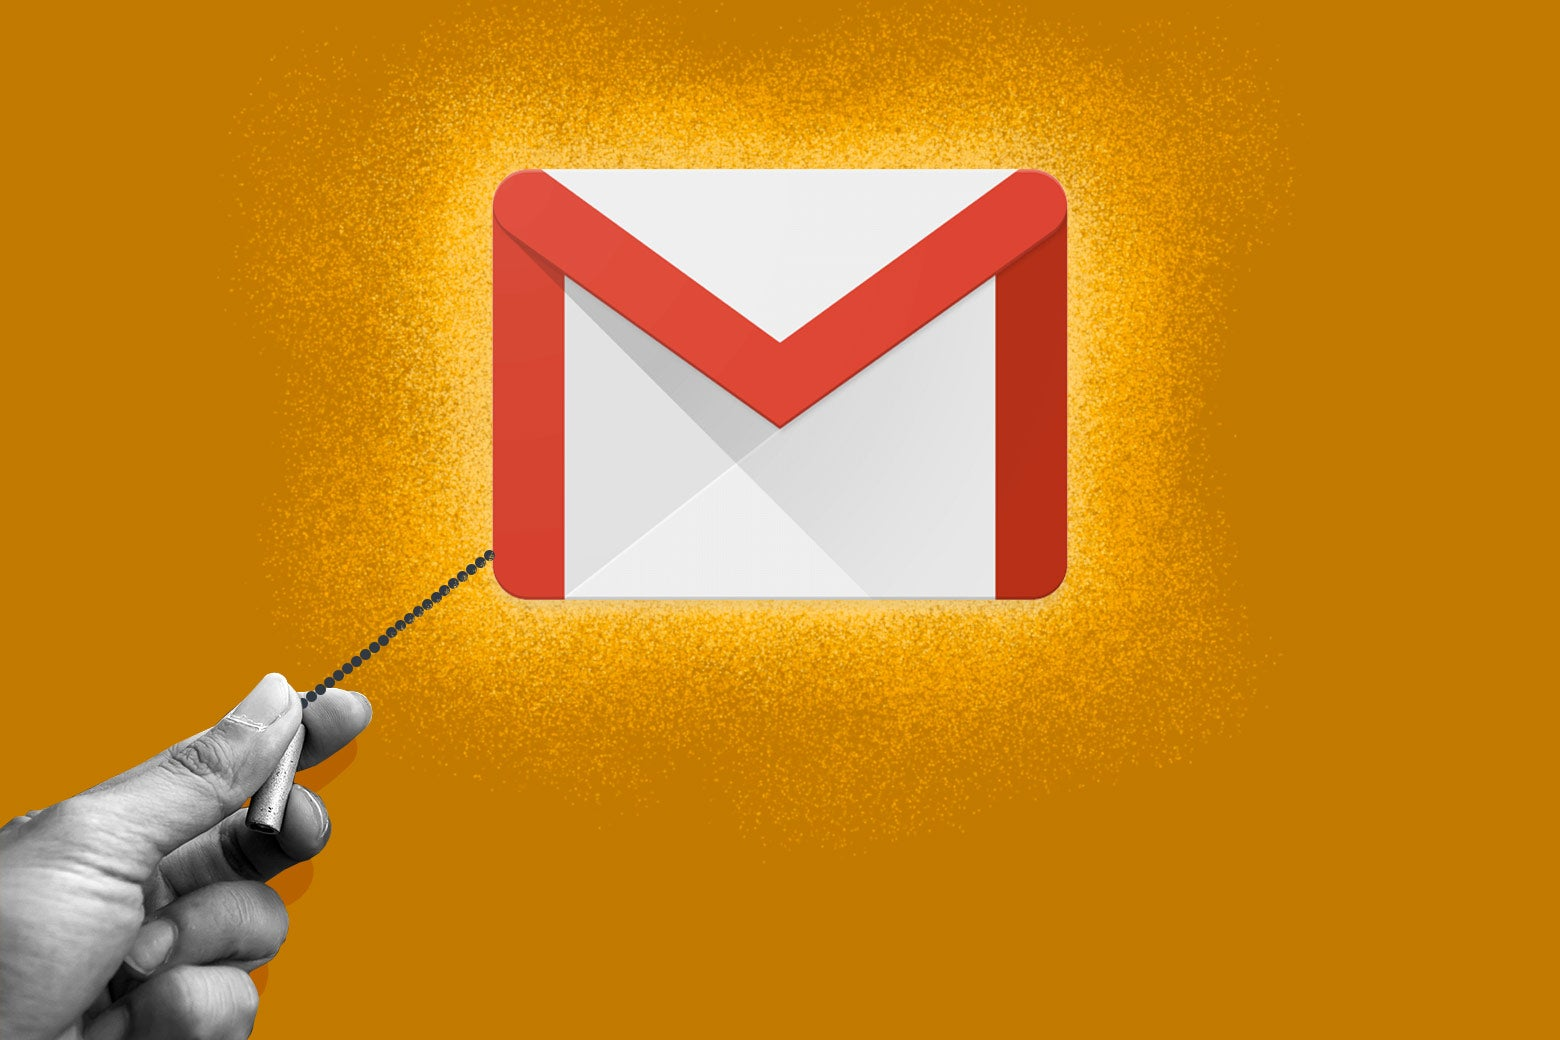 A hand pulls a lamp cord on a Gmail logo.